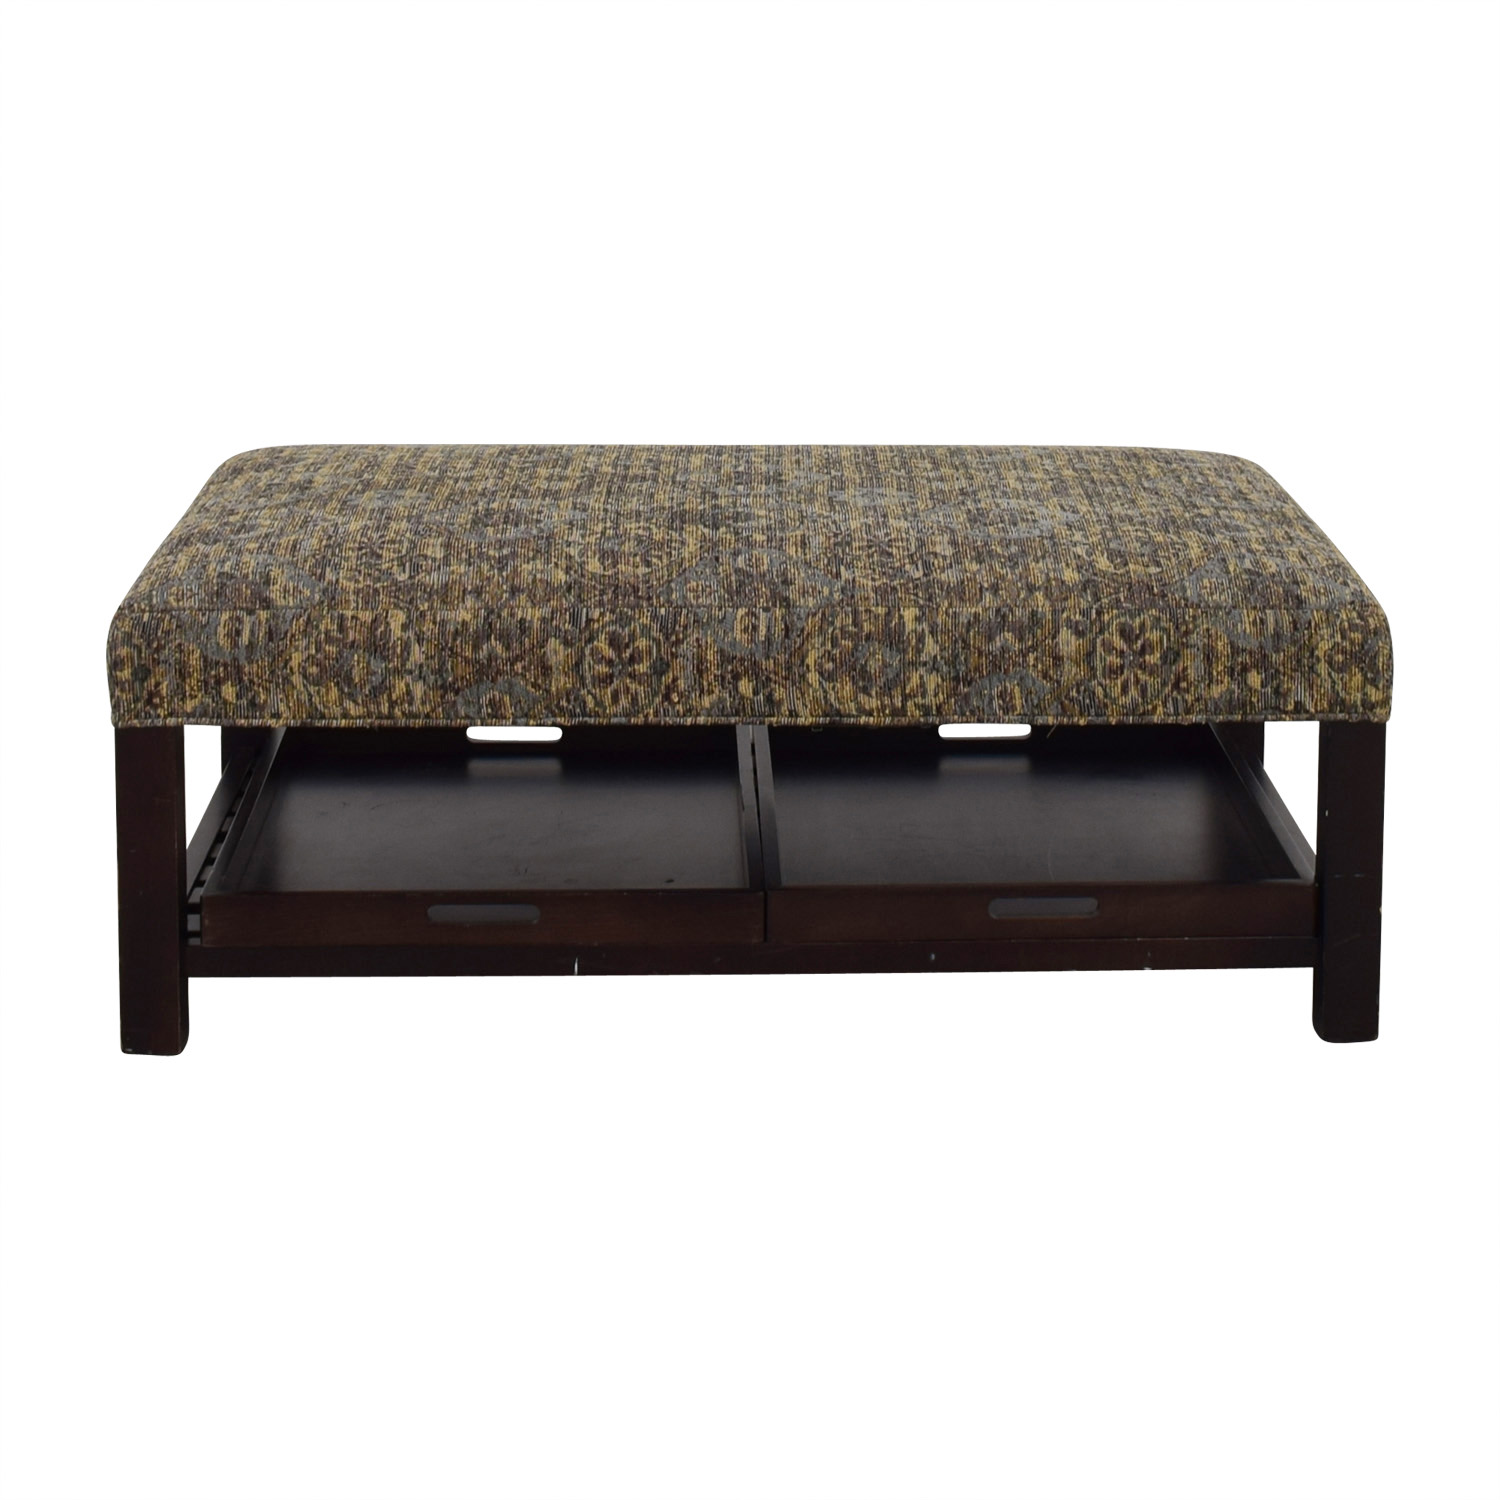 Arhaus Multi-Colored Ottoman with Storage Trays Arhaus ...  sc 1 st  Furnishare & 90% OFF - Arhaus Arhaus Multi-Colored Ottoman with Storage Trays ...